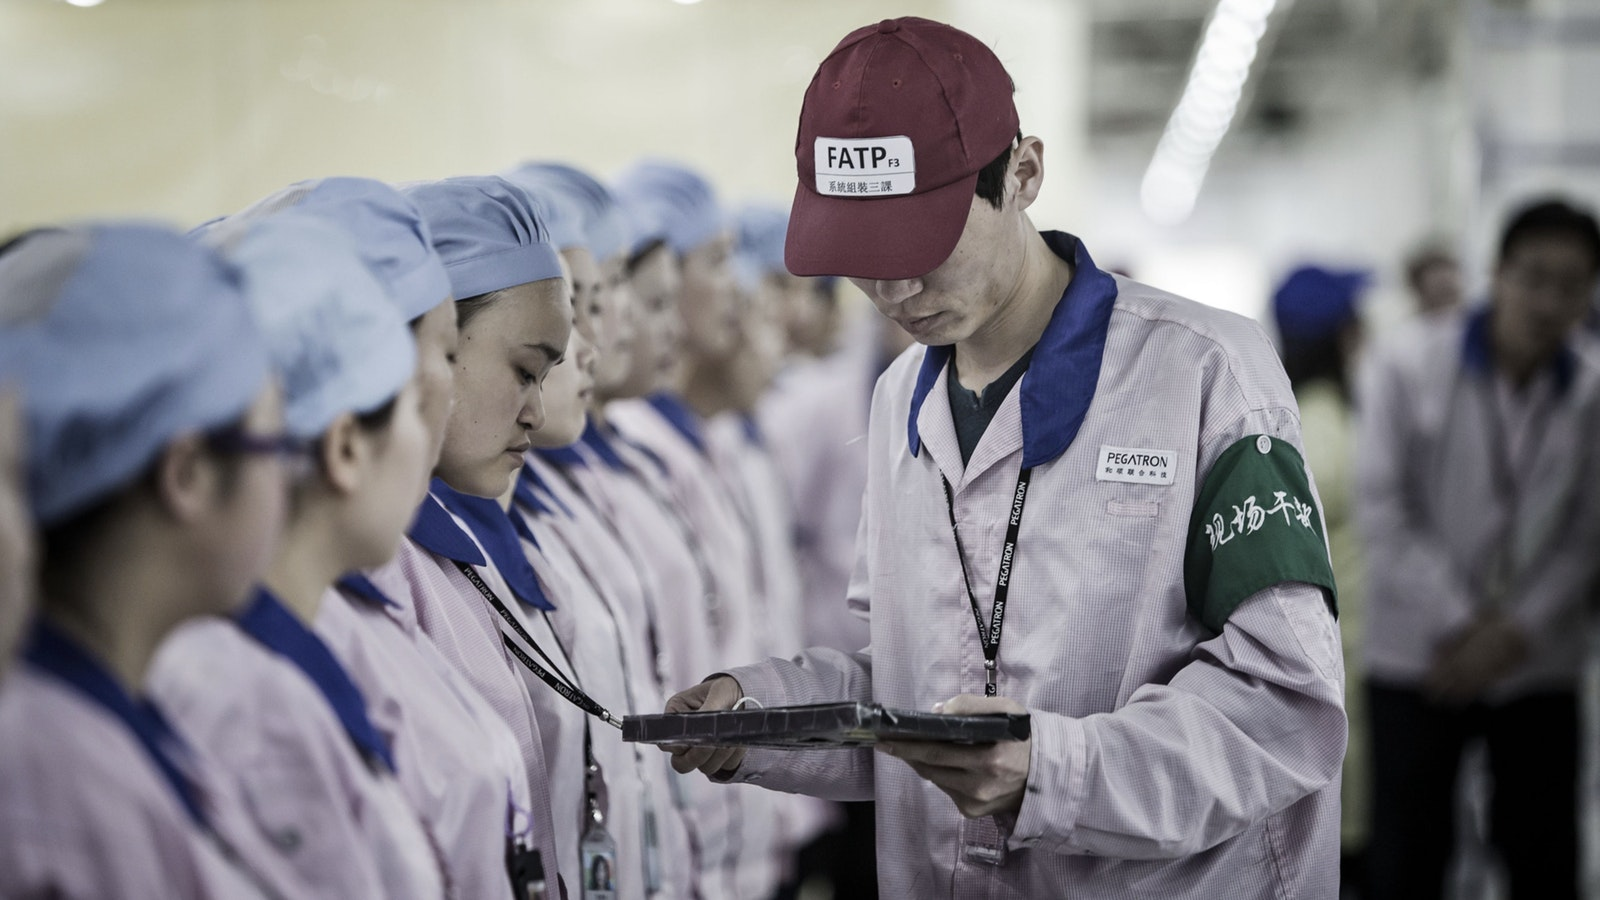 Workers at a Pegatron Corp. factory in Shanghai, China in 2016. Photo by Bloomberg